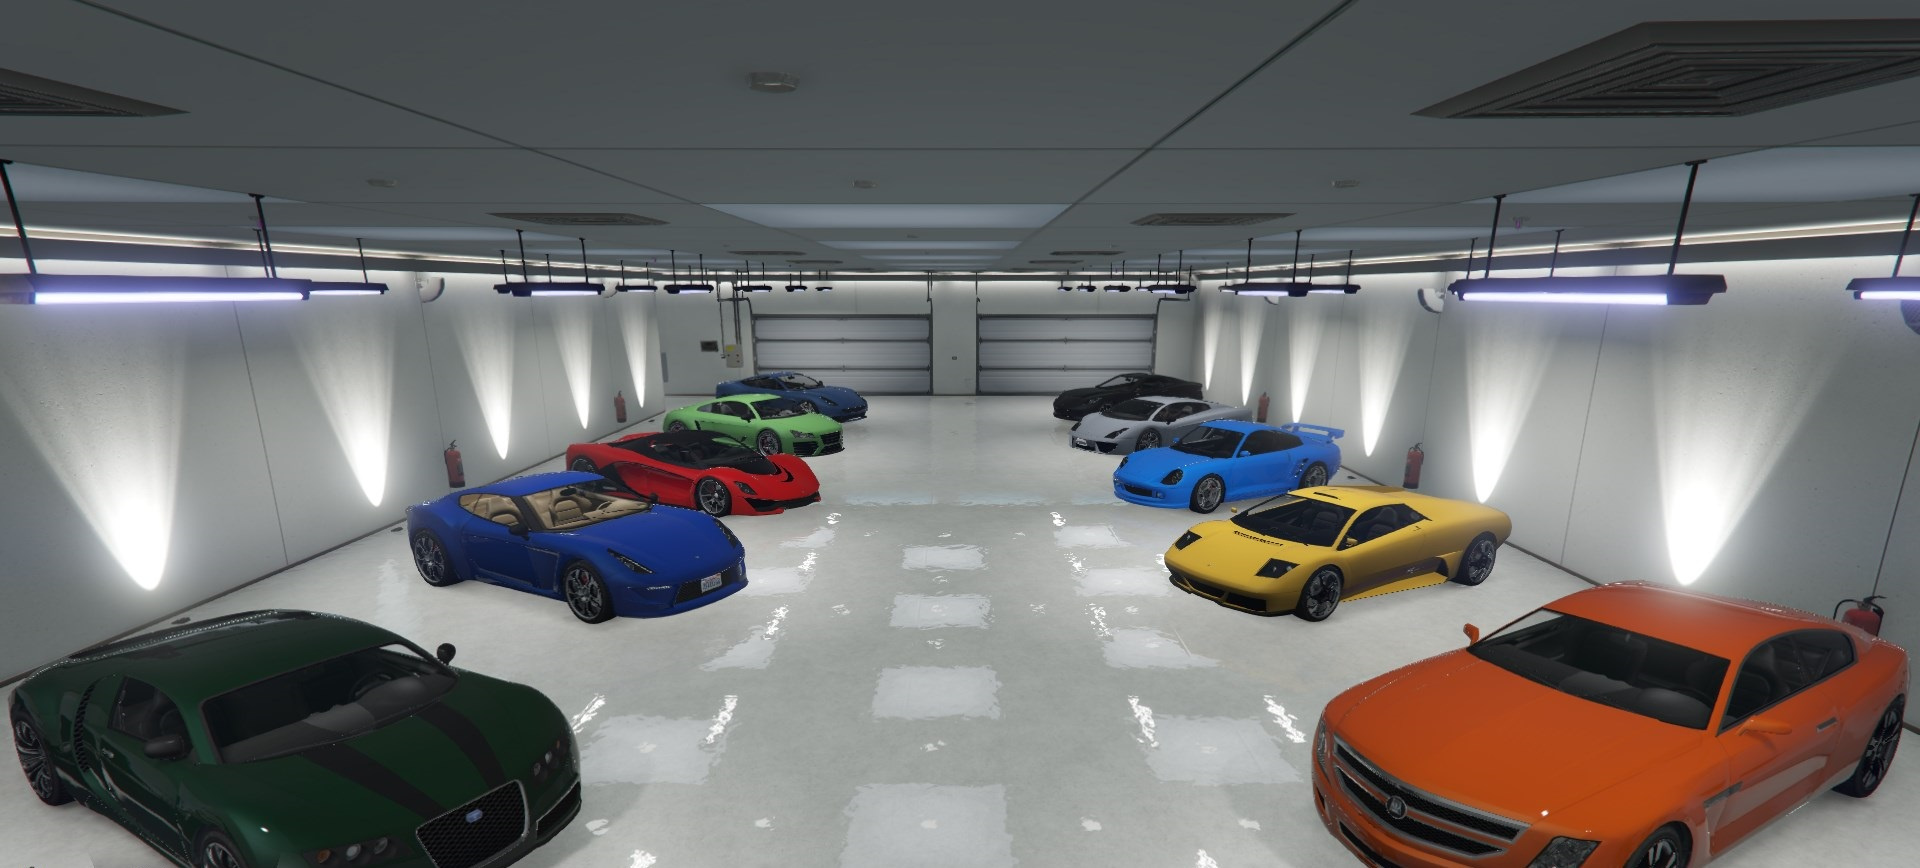 single player garage spg gta5 mods com 0d552a grand theft auto v 2015 05 25 23 04 32